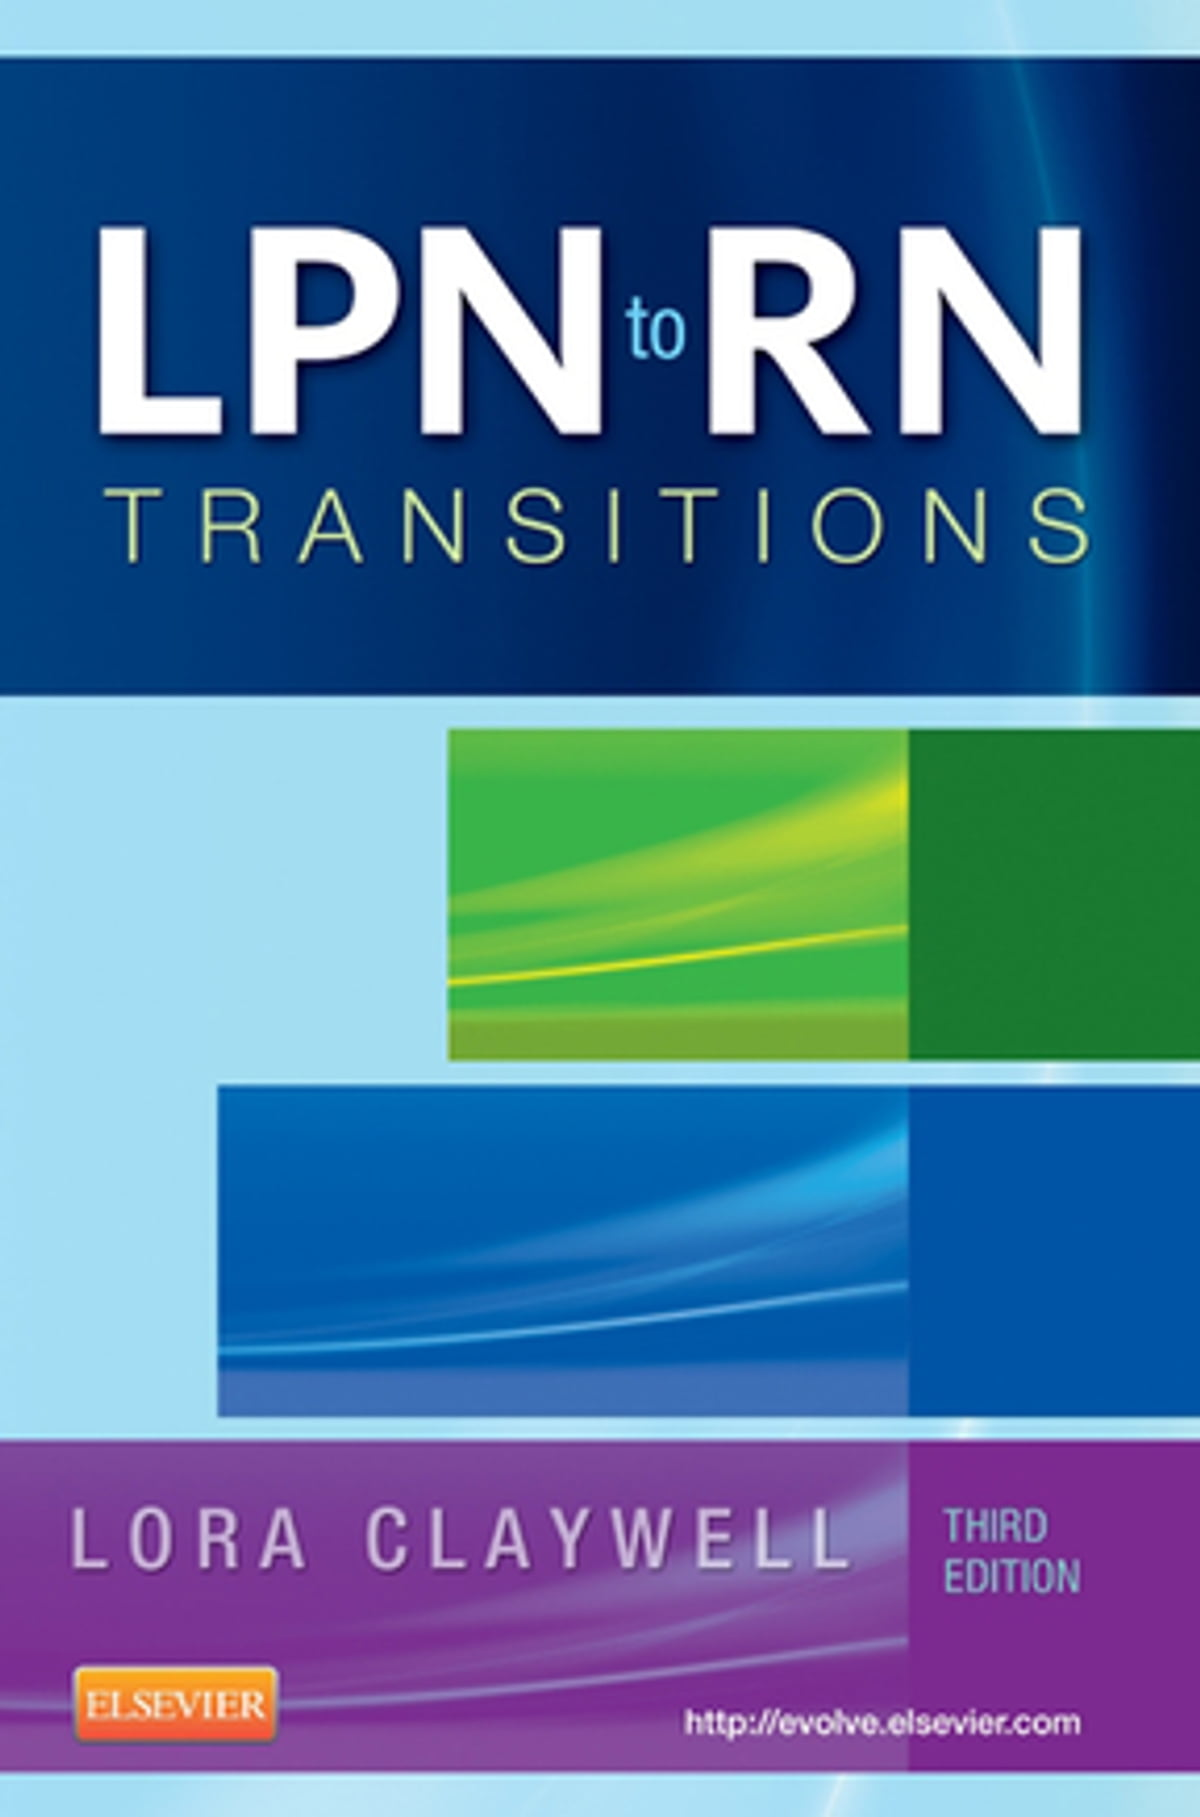 LPN to RN Transitions: Achieving Success in Your New Role , Third Edition